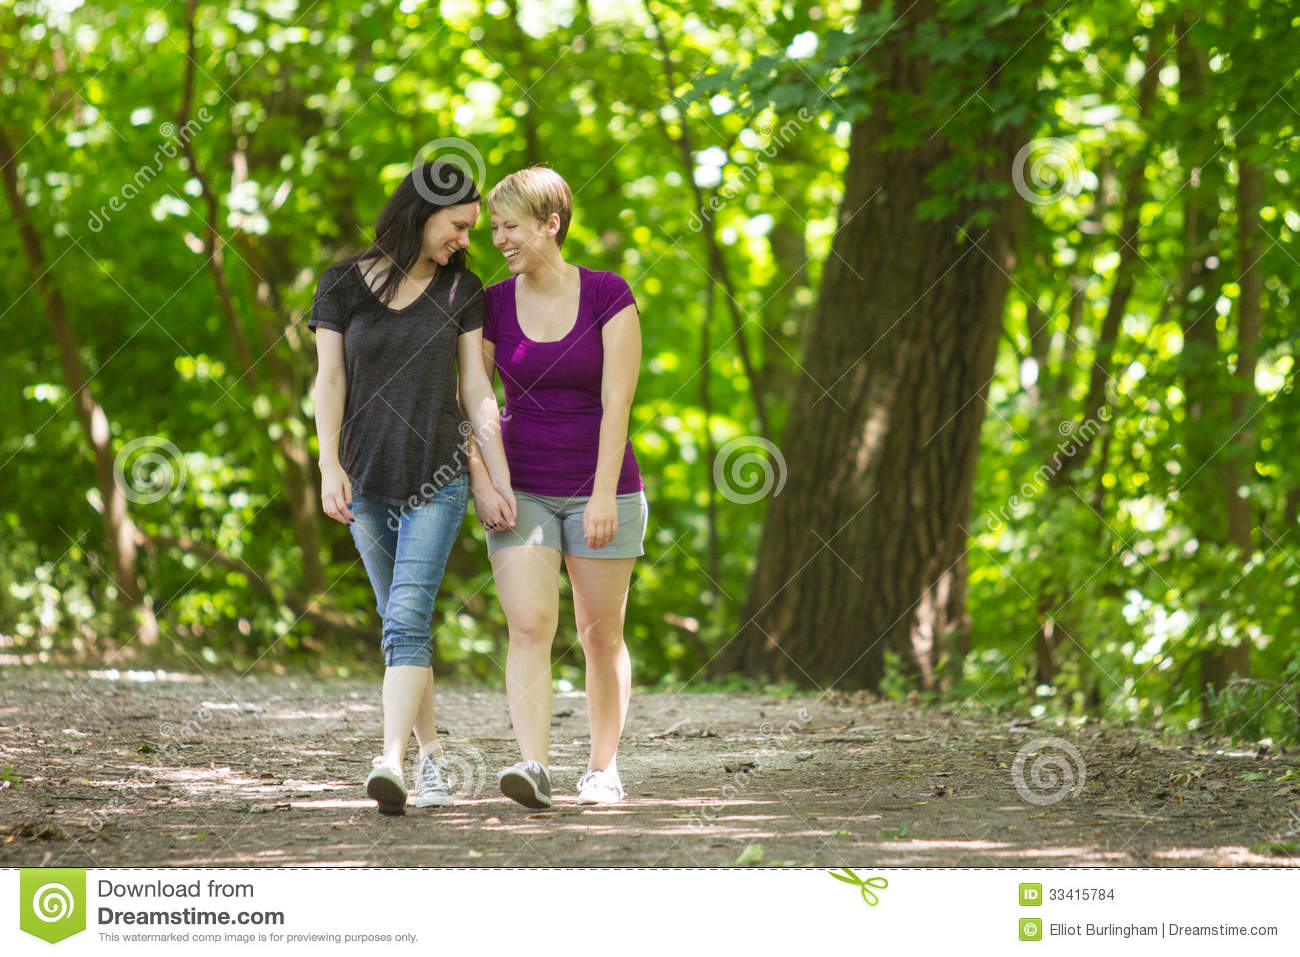 Two girlfriends walking in forest and meeting a guy - 3 part 2